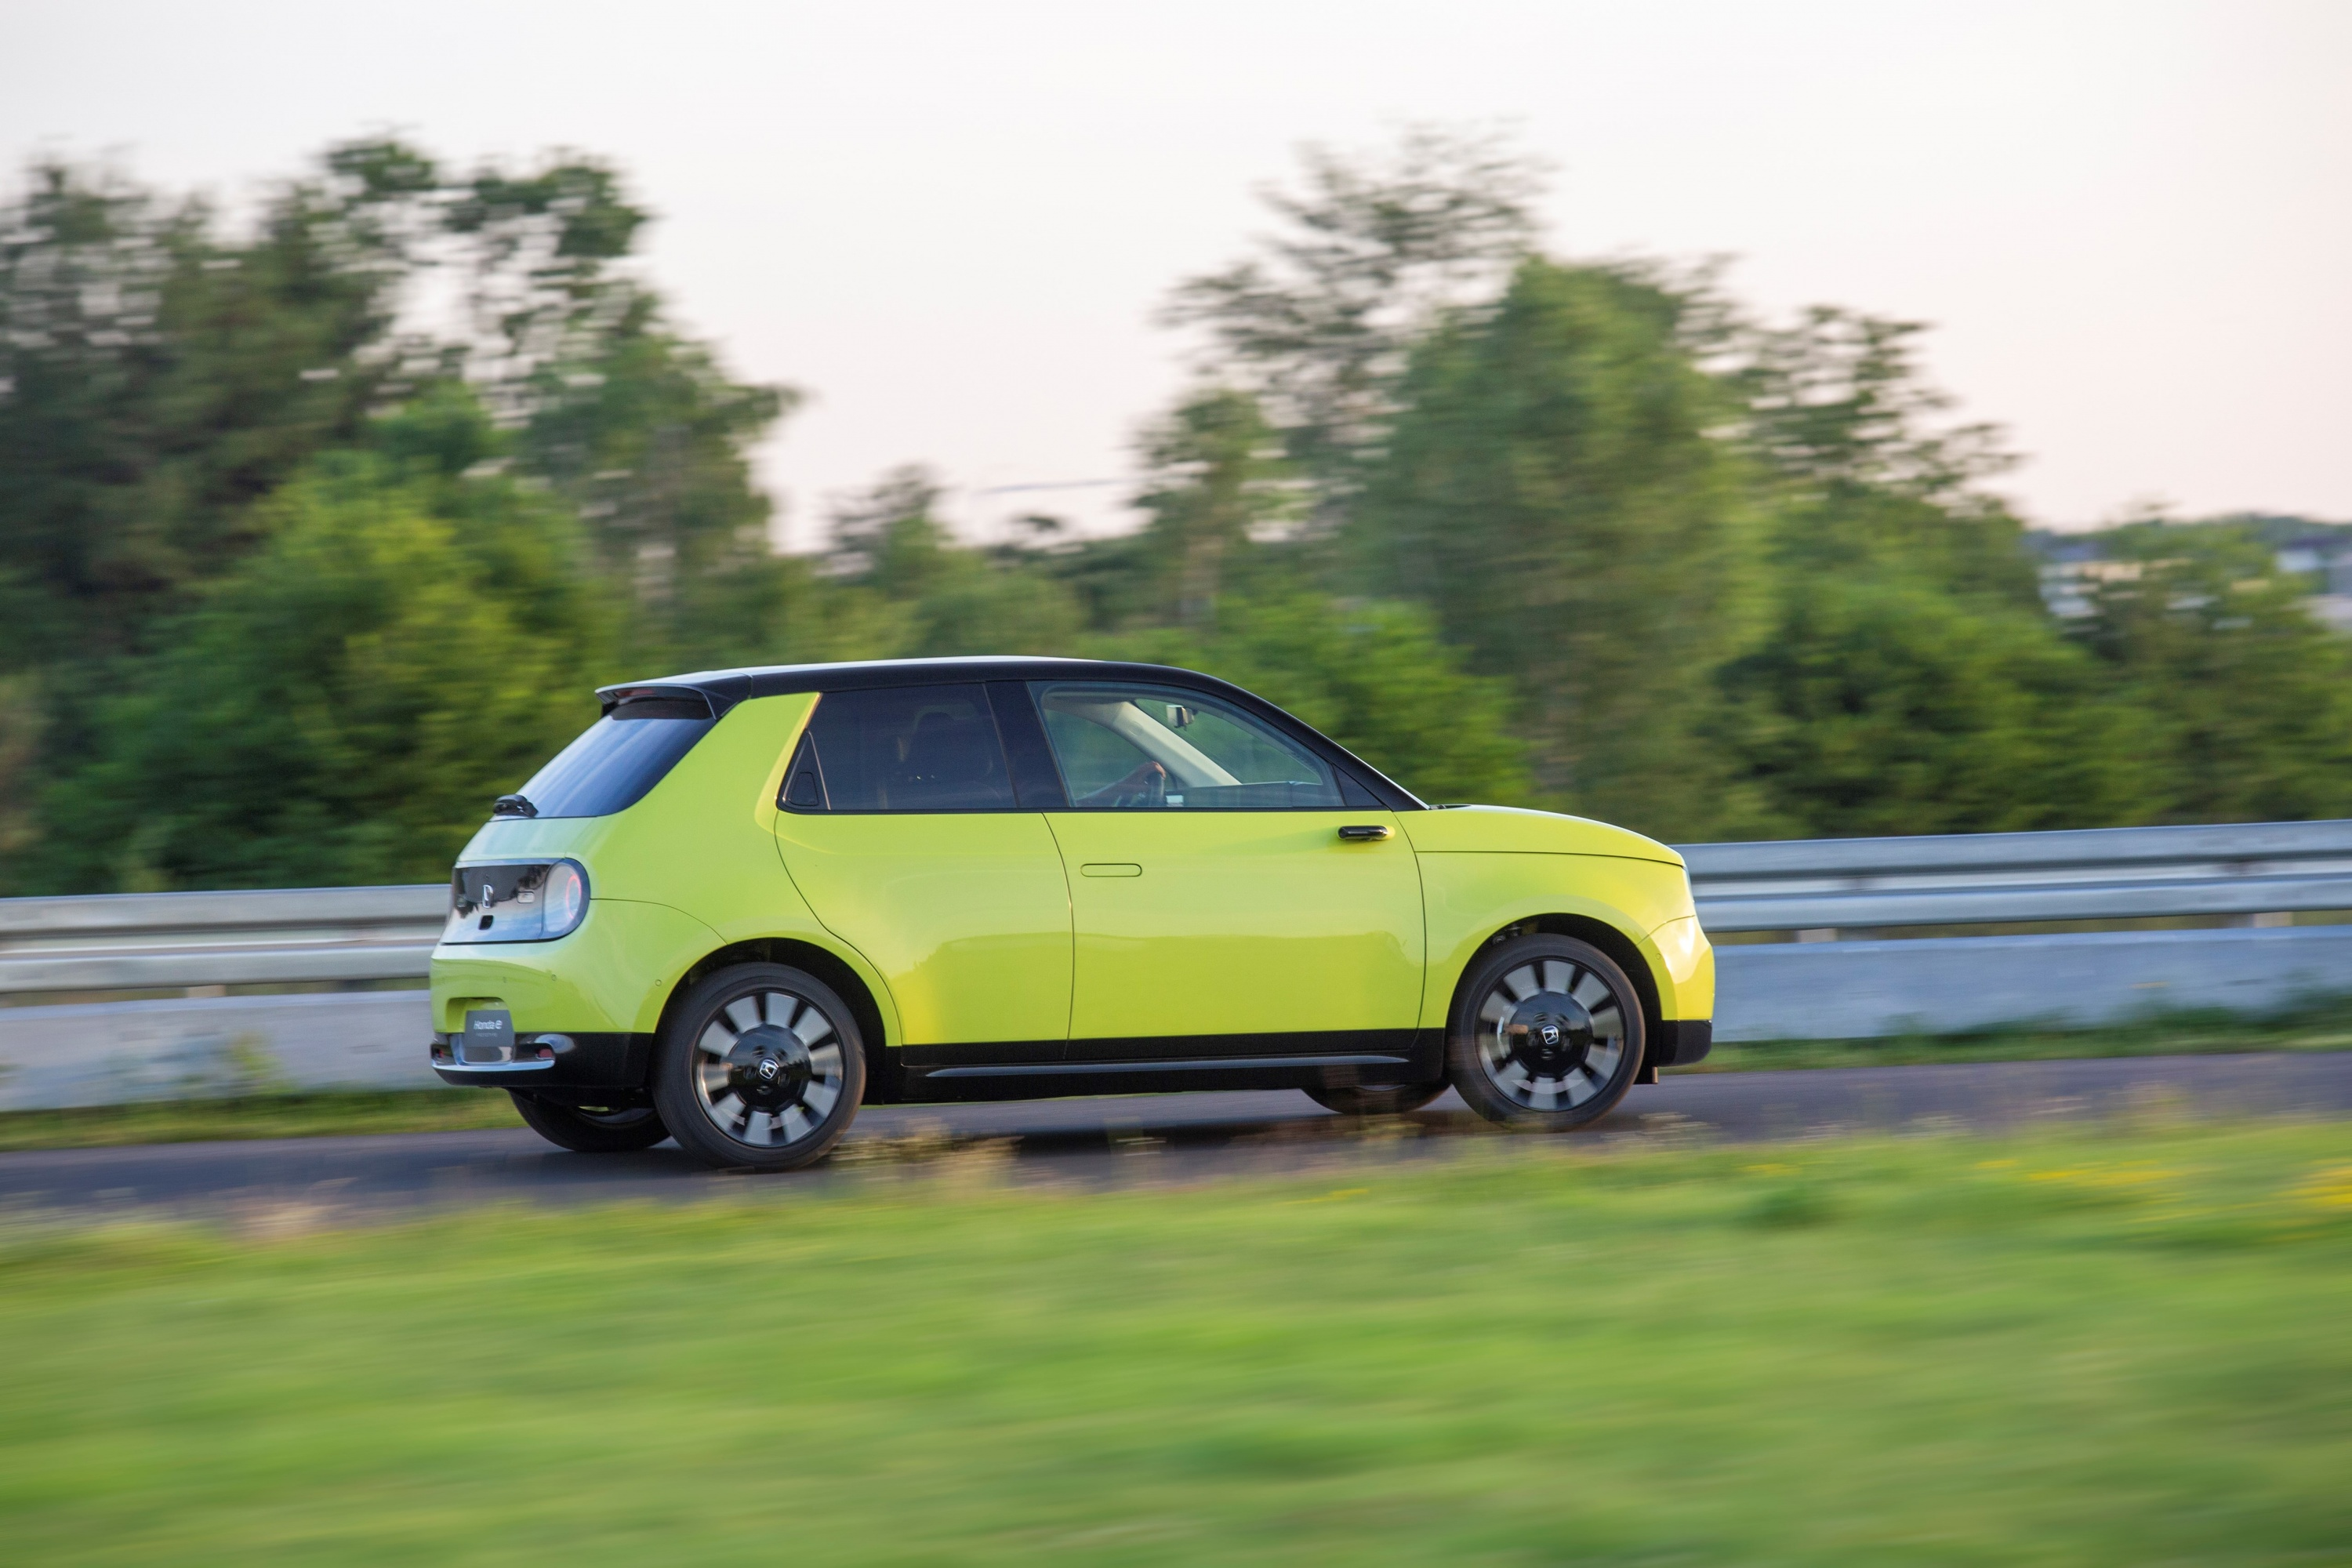 185281_HONDA_E_THE_PERFECT_BALANCE_OF_EFFICIENCY_AND_PERFORMANCE_FOR_URBAN.jpg